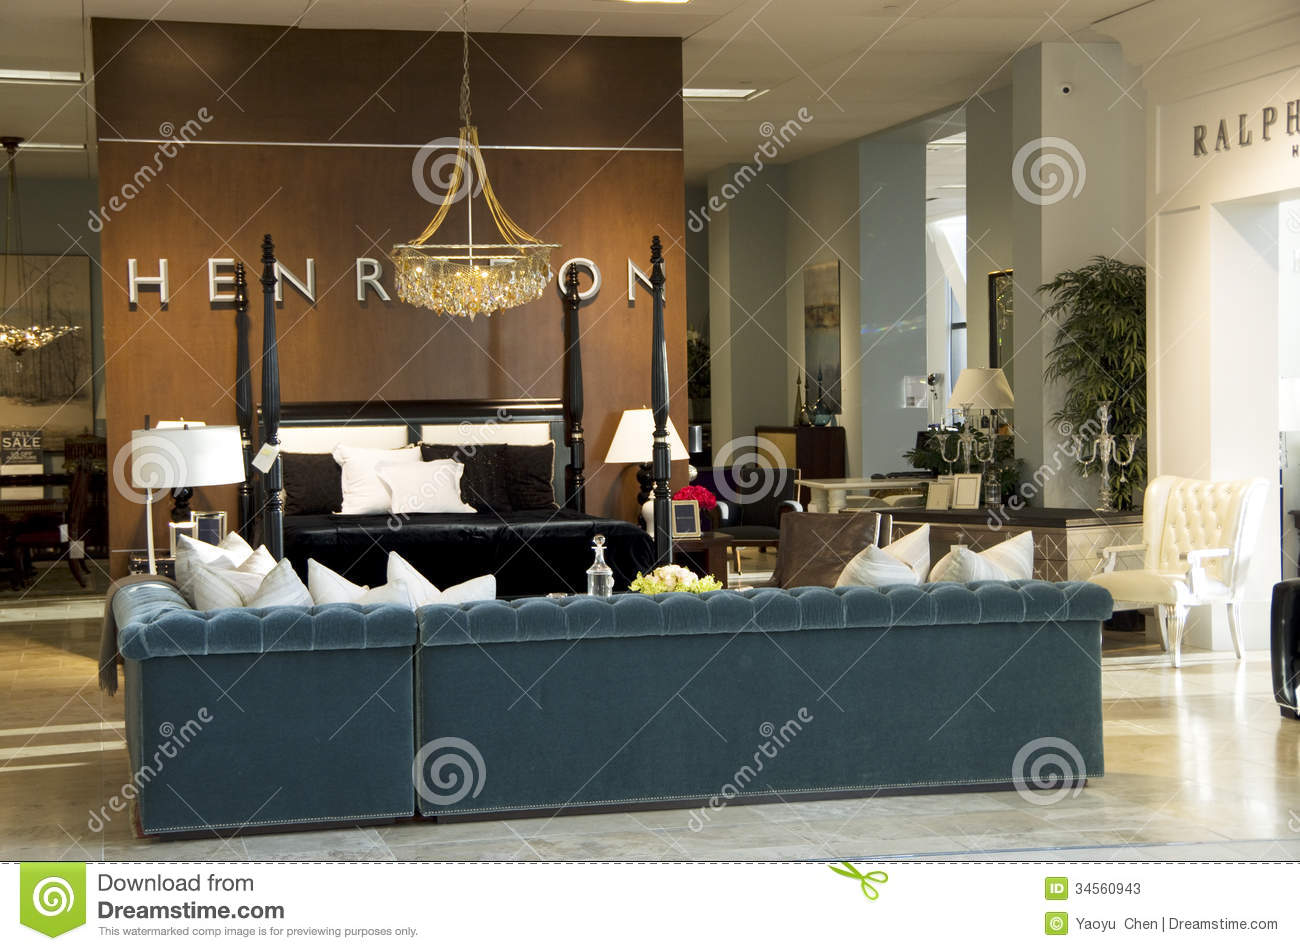 Luxury Furniture Store Editorial Stock Photo Image Of Design 34560943